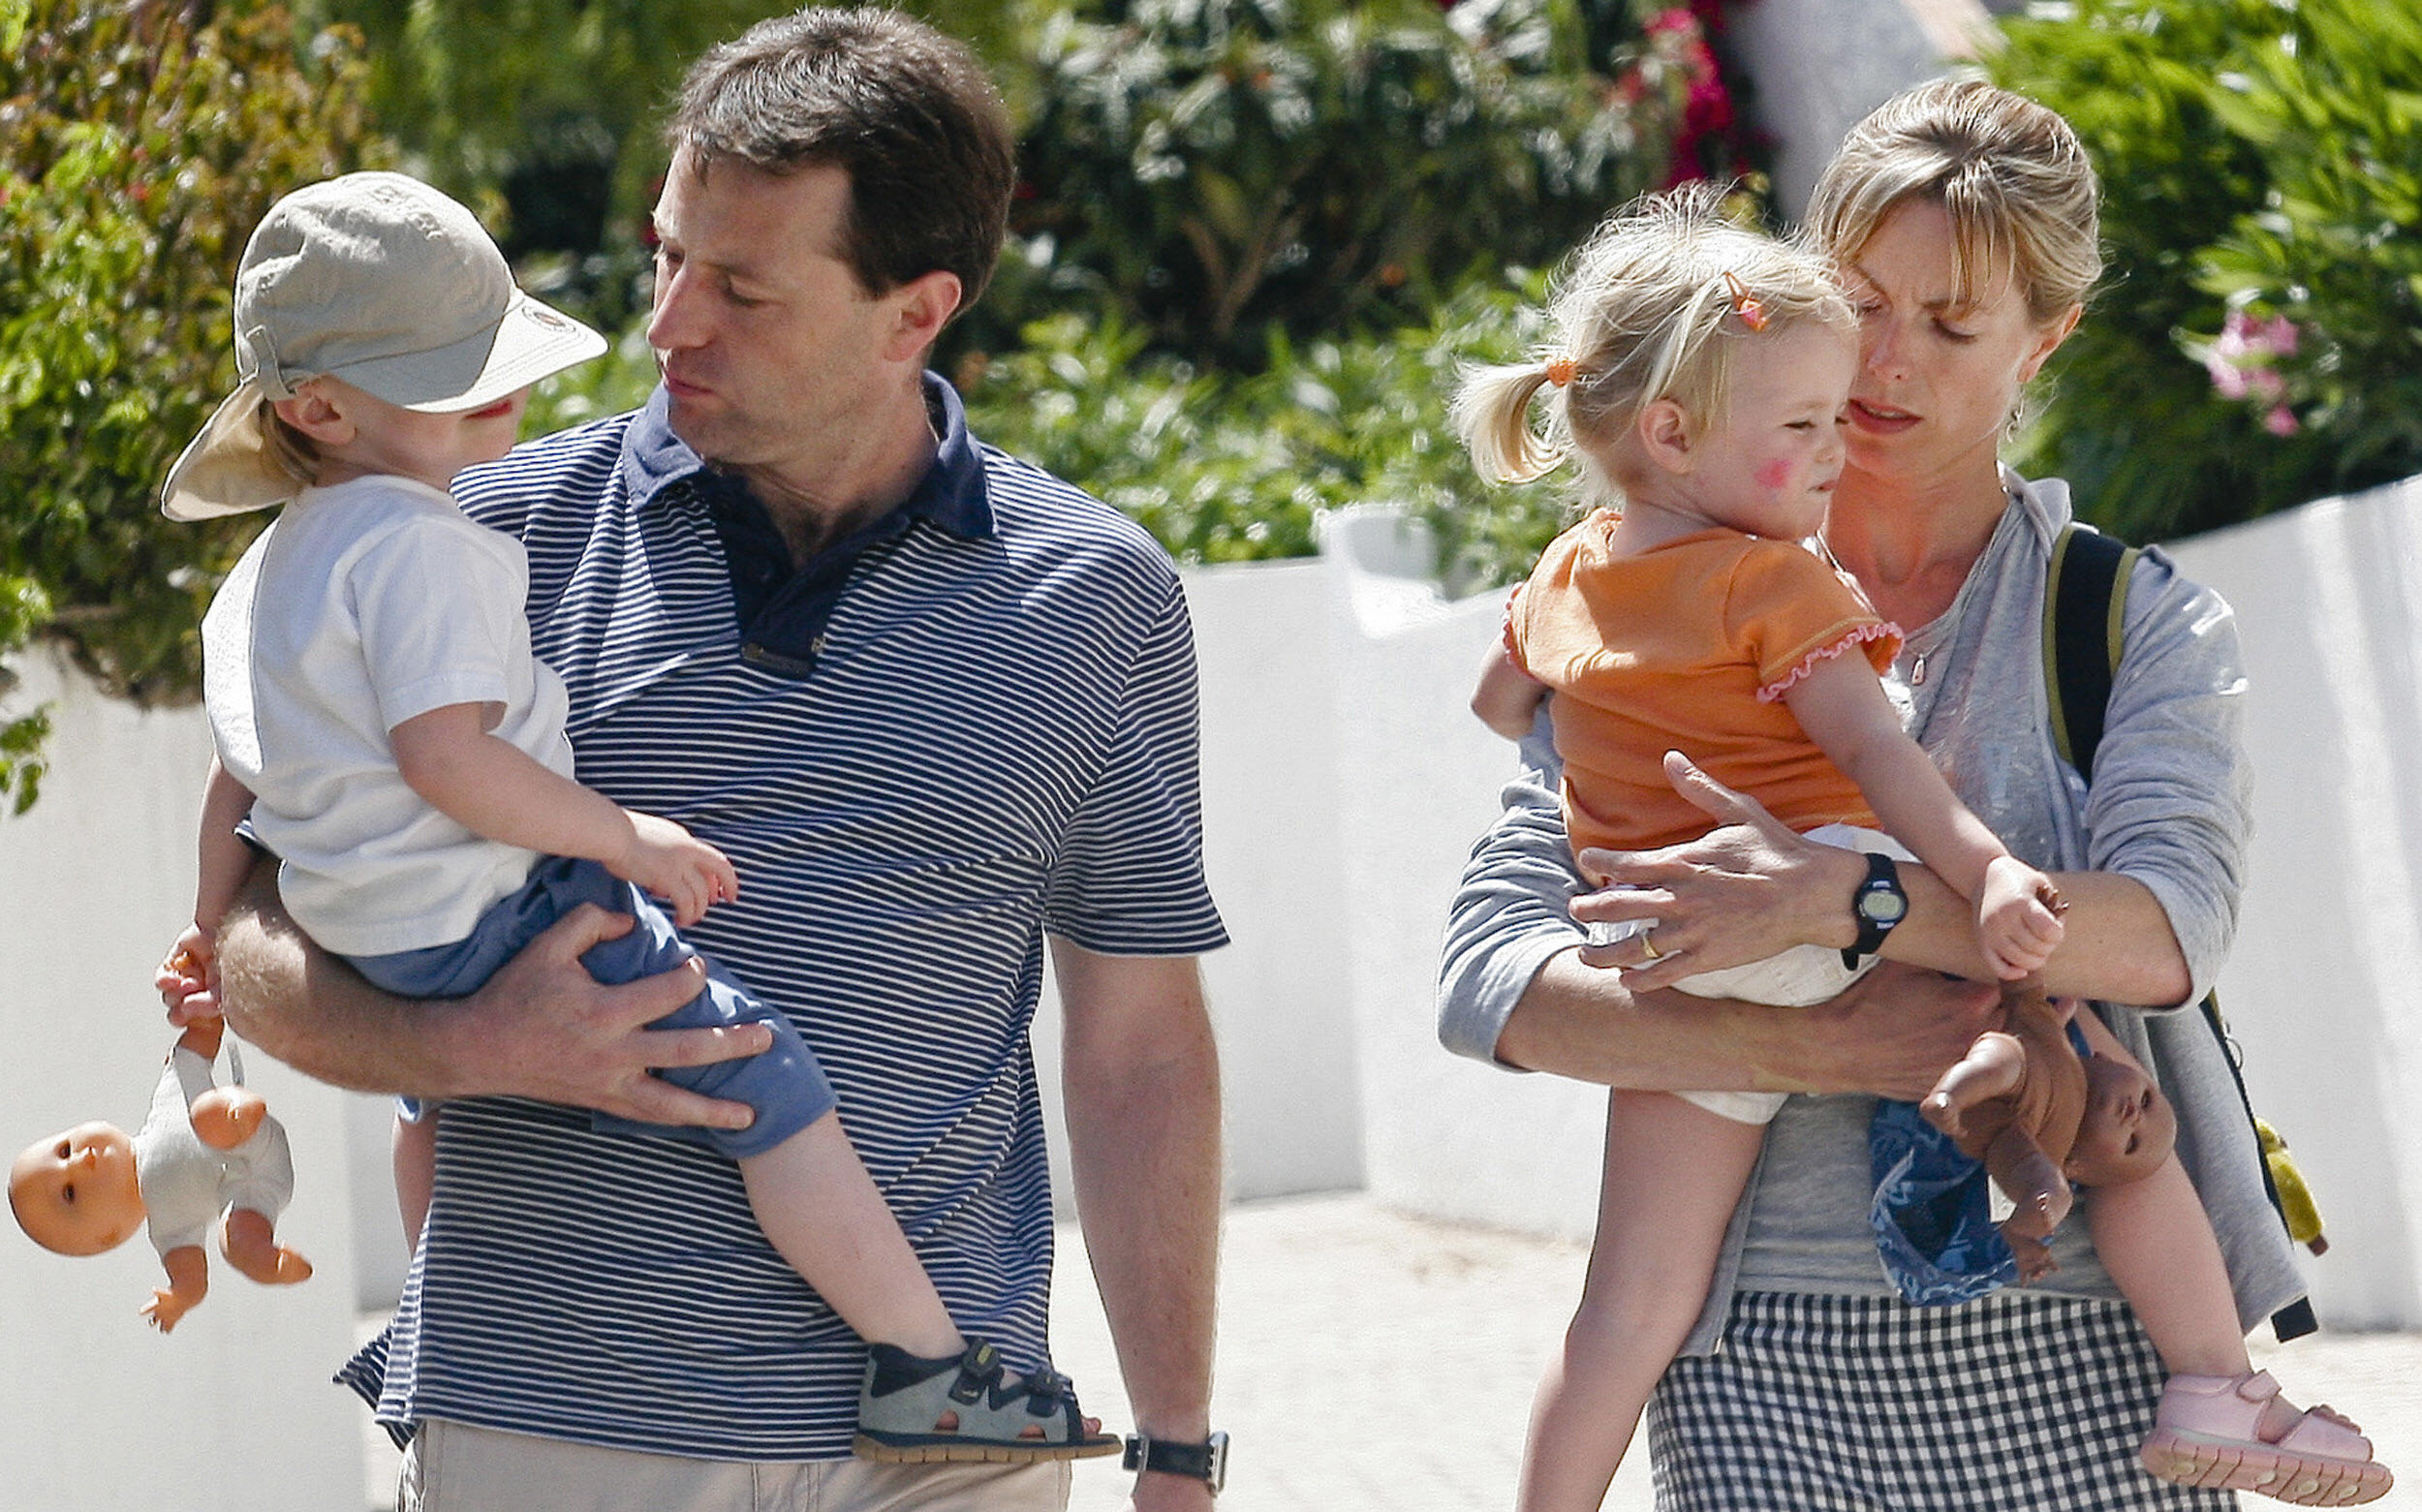 The McCann's still live in their family home, in a small English village. (Image: Getty)